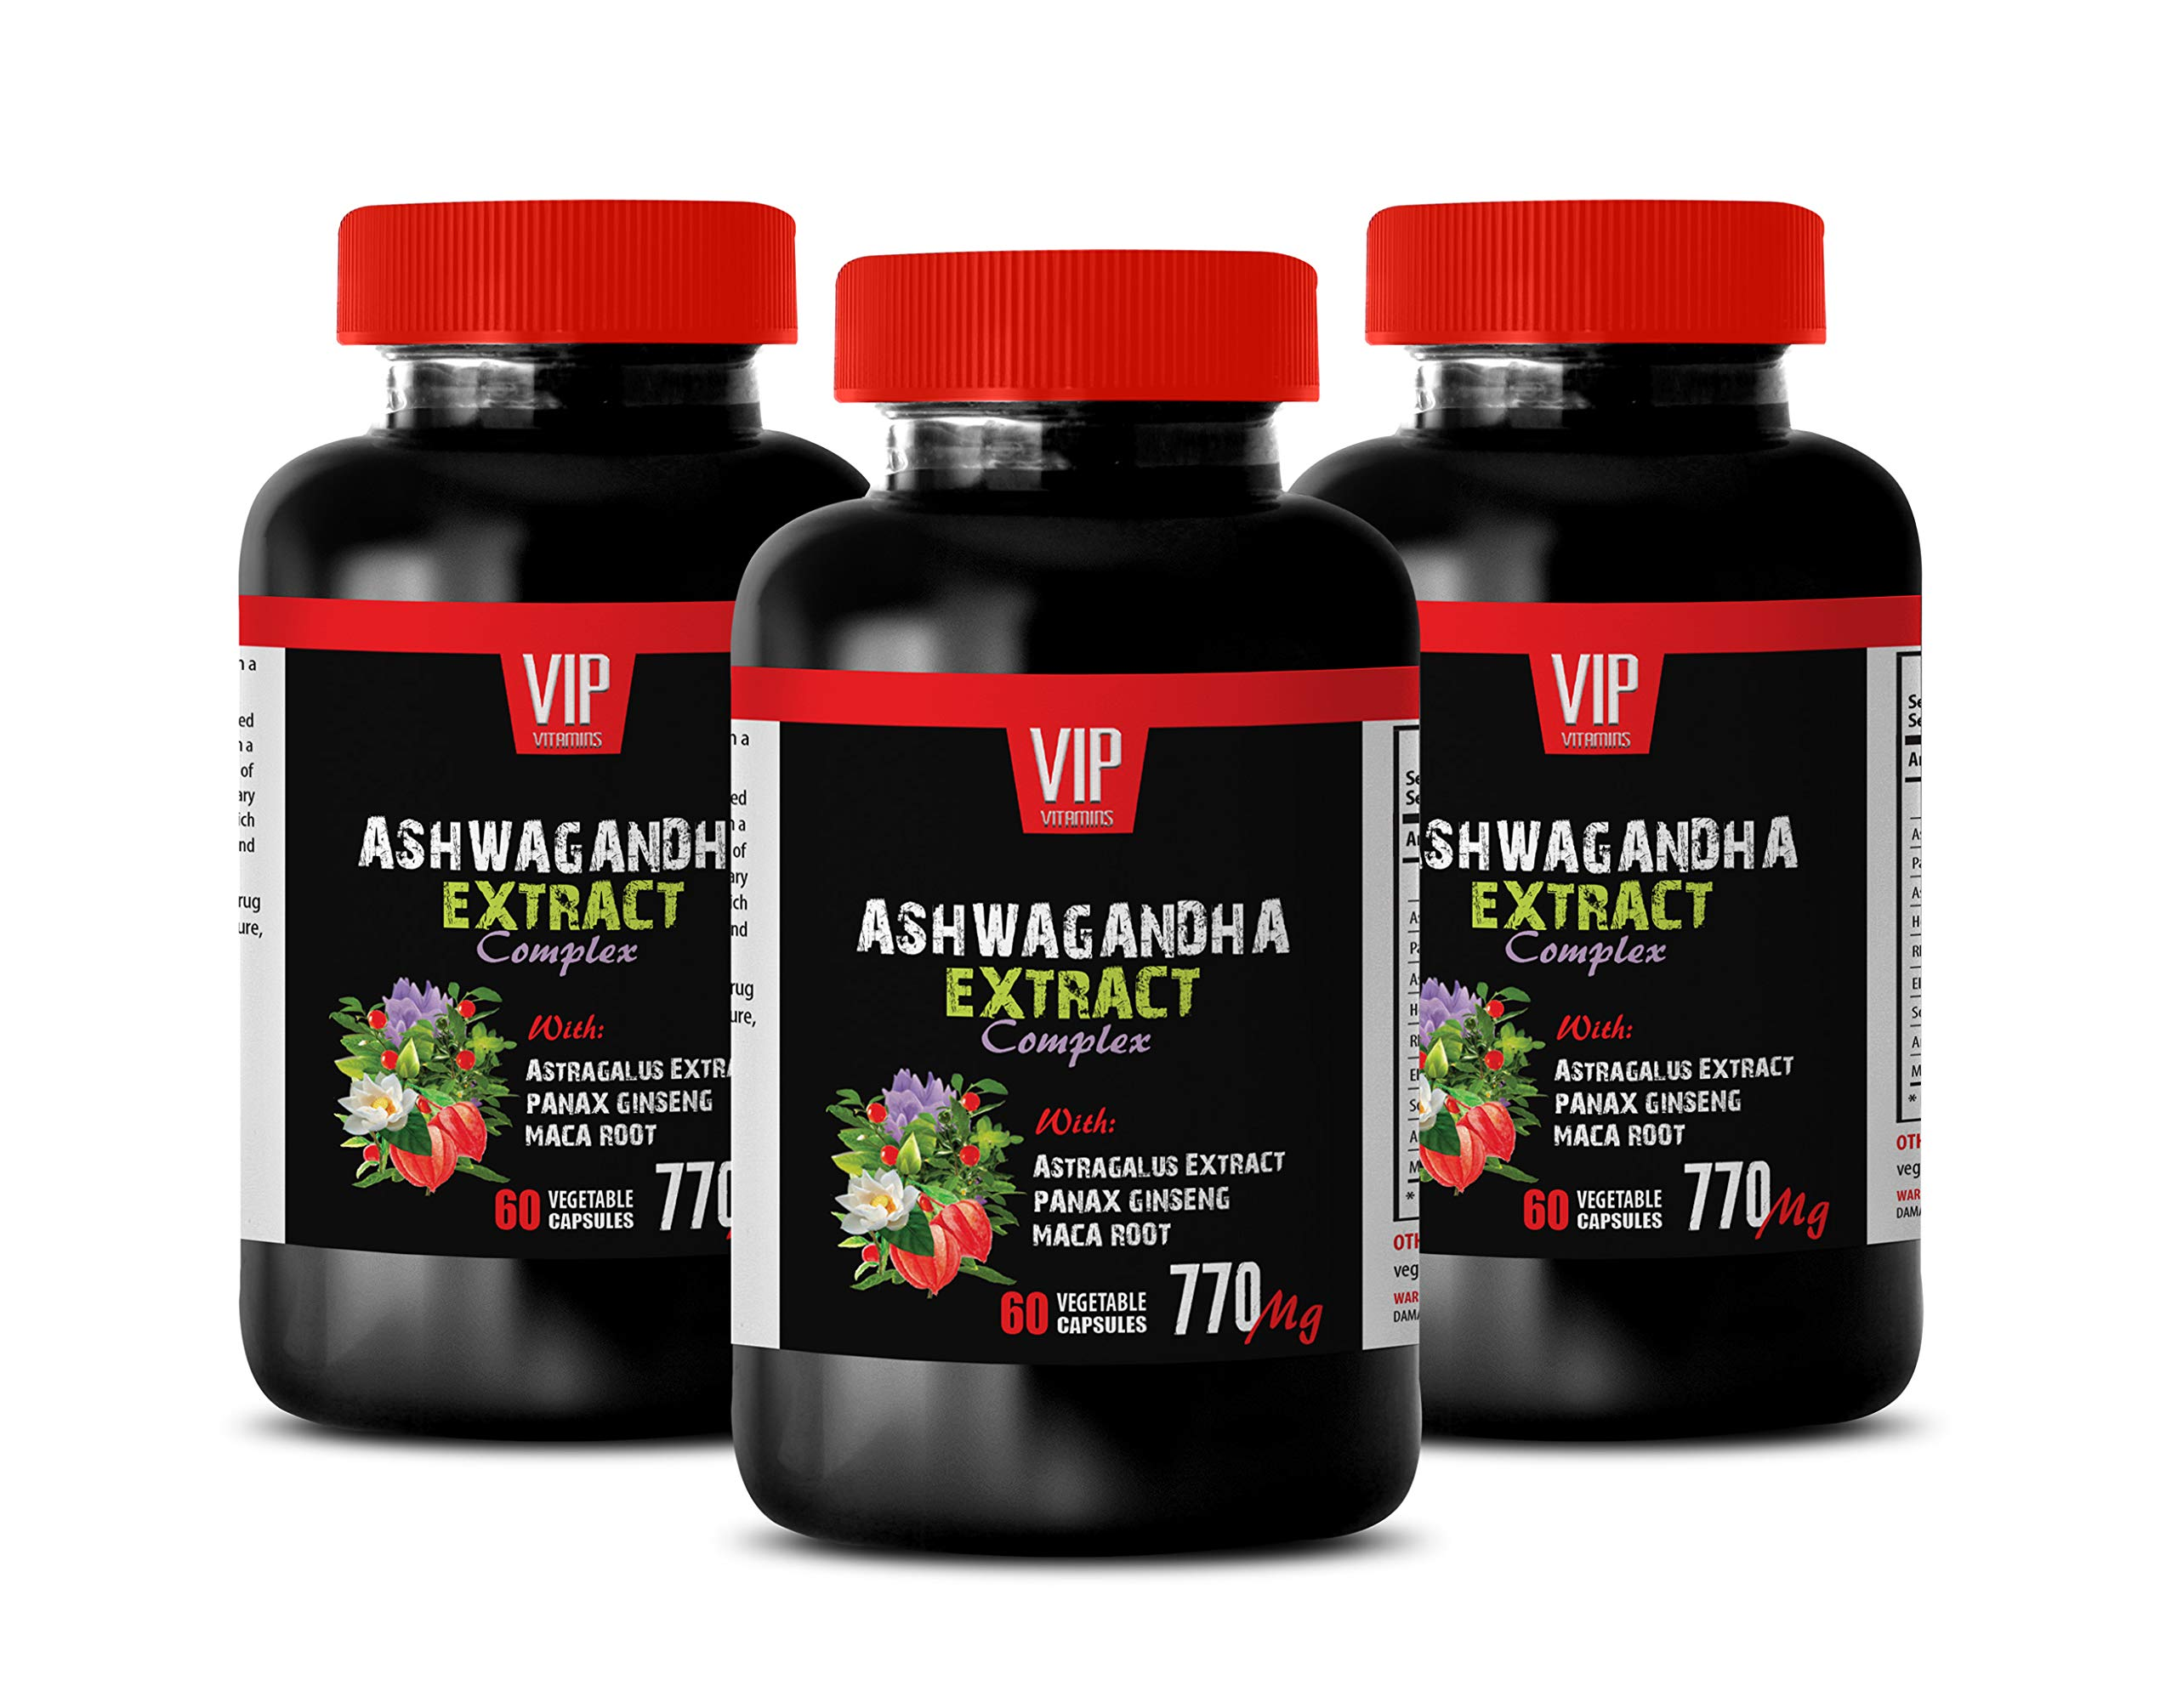 Brain Vitamins Memory for Adults - ASHWAGANDHA Extract Complex 770MG with Astragalus PANAX Ginseng MACA Root - ashwagandha multivitamin - 3 Bottles 180 Capsules